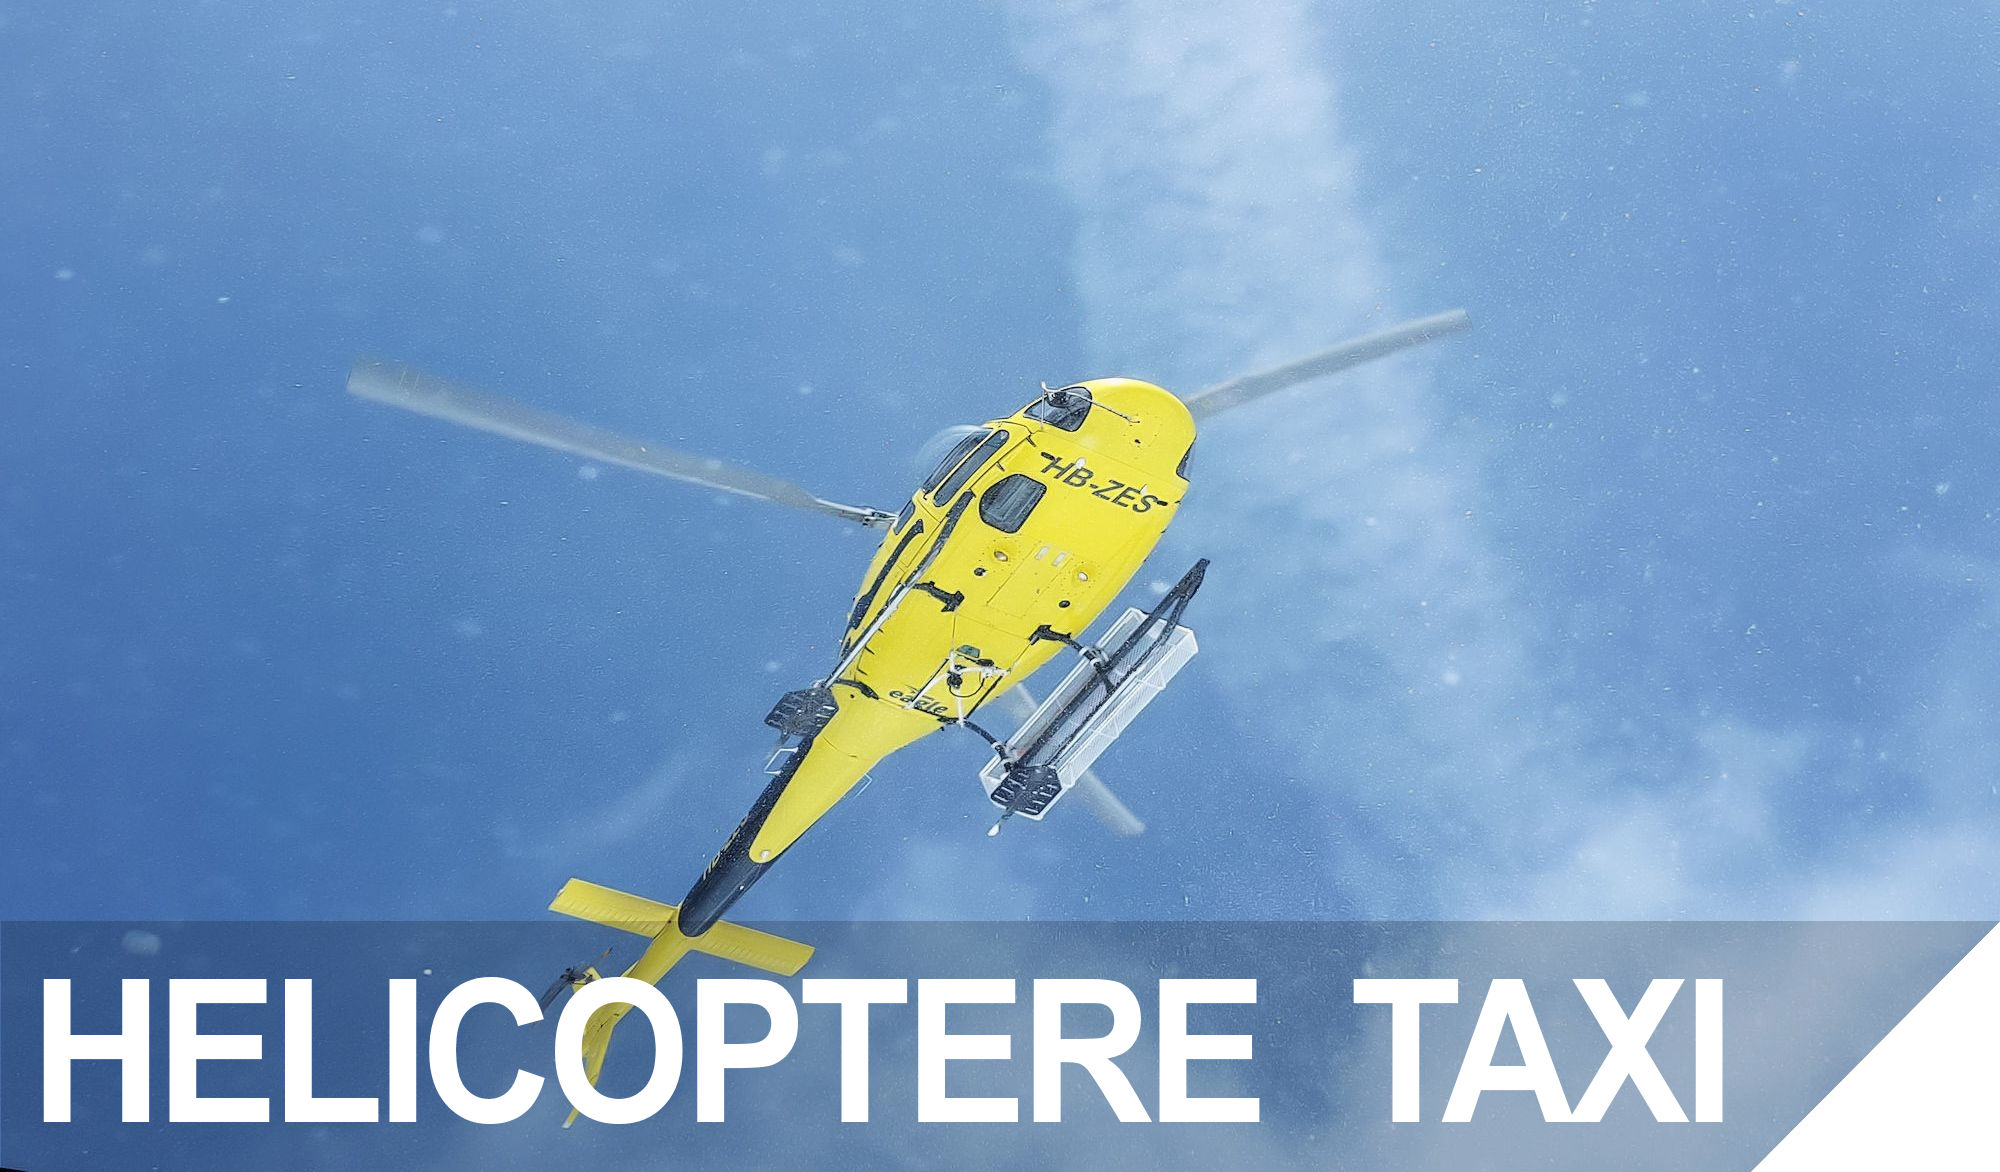 HELICOPTERE TAXI